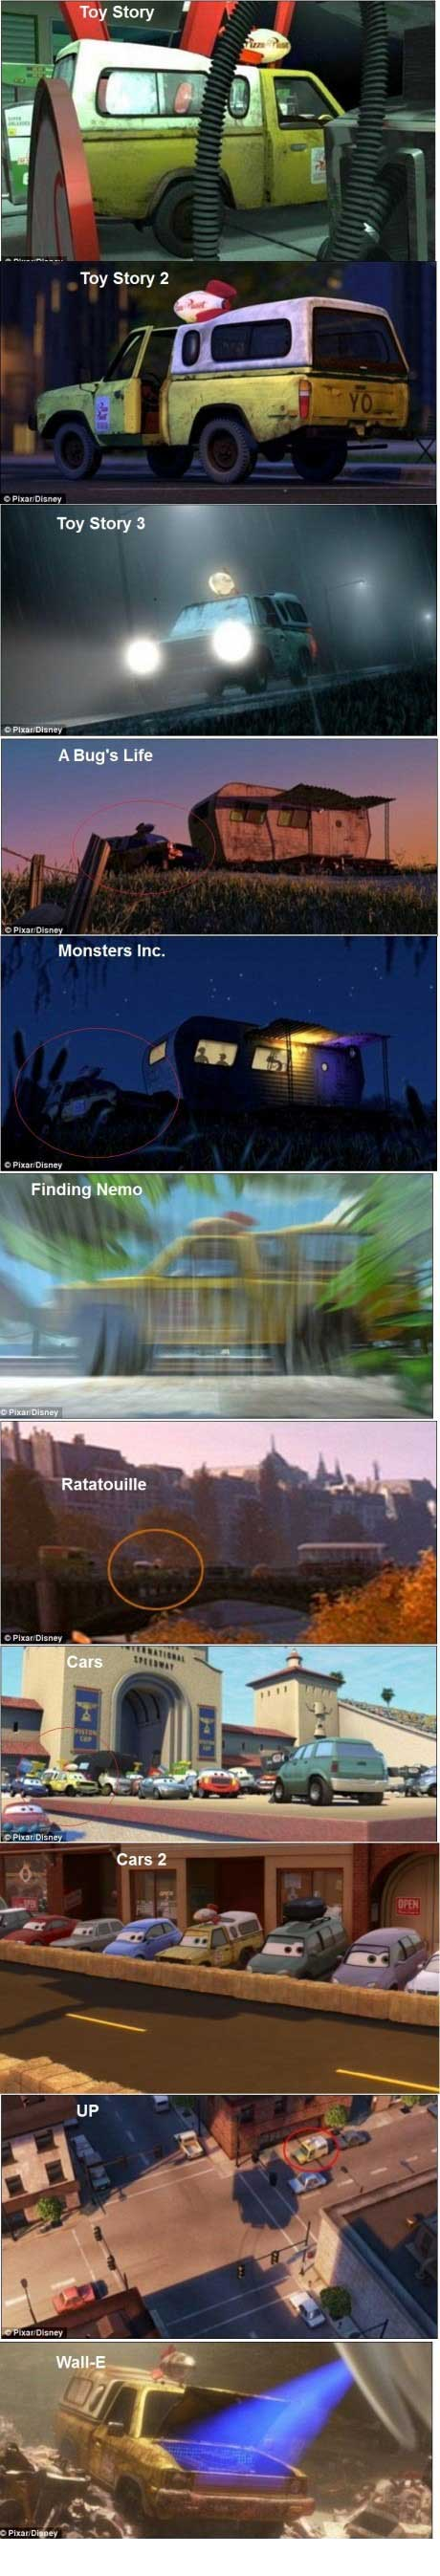 Pixar, it's all about the details